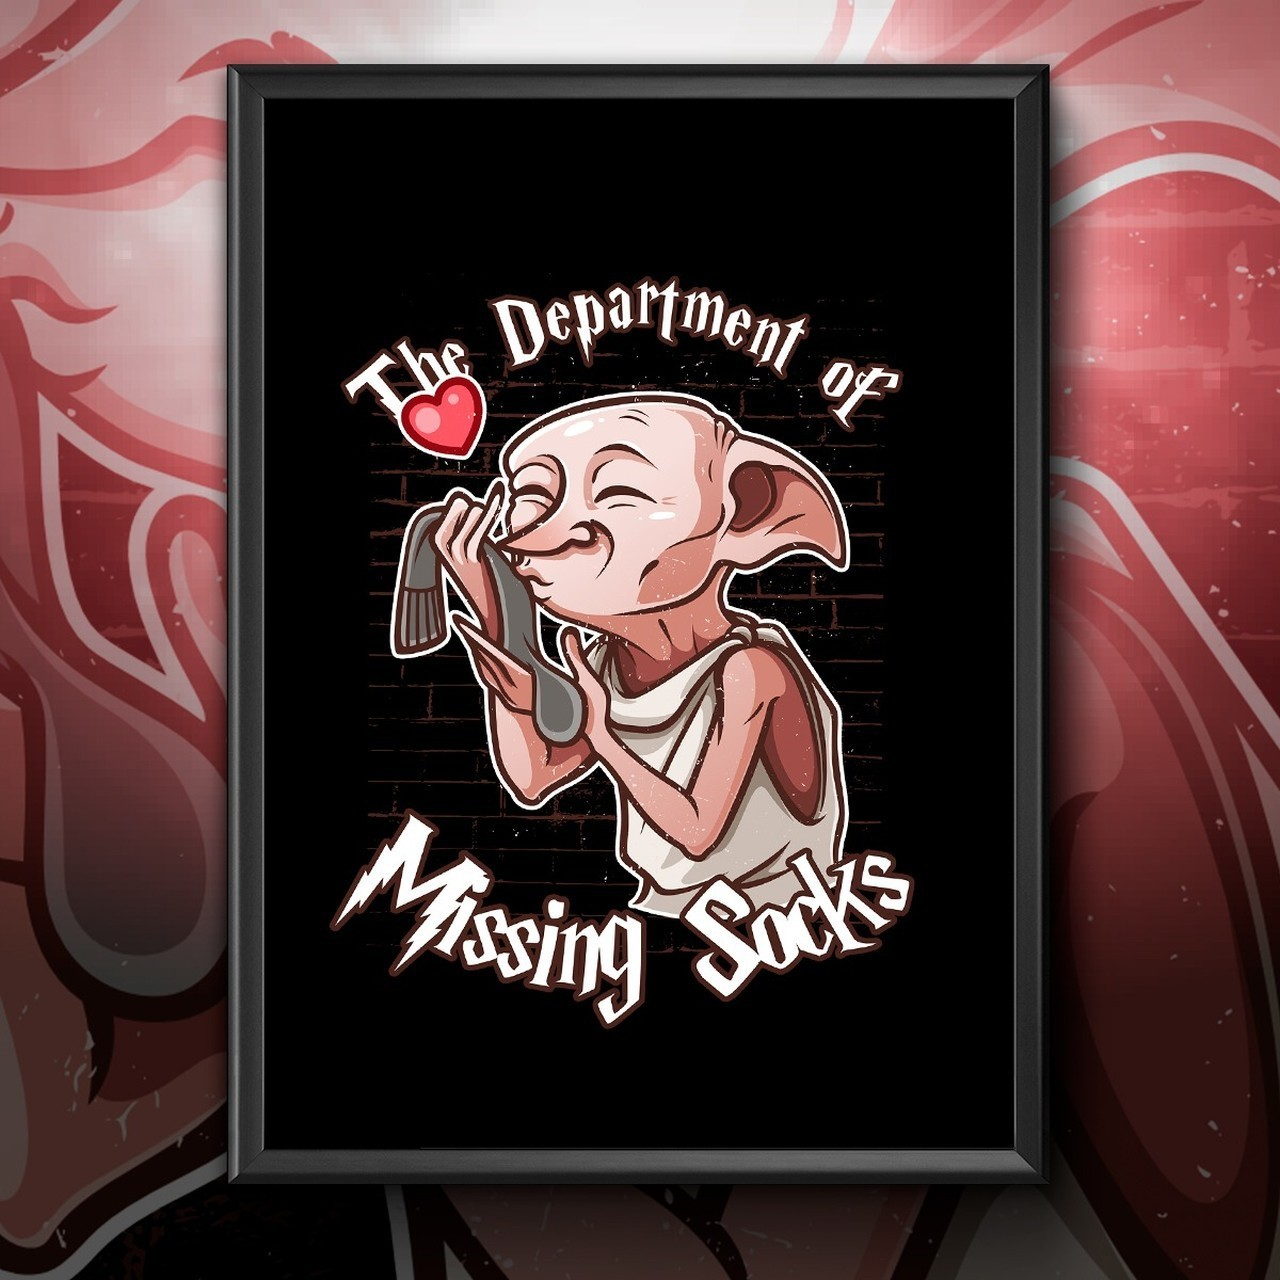 "Quadro Com Moldura: Dobby ""The Department Of Missing Socks"" - 46x33"